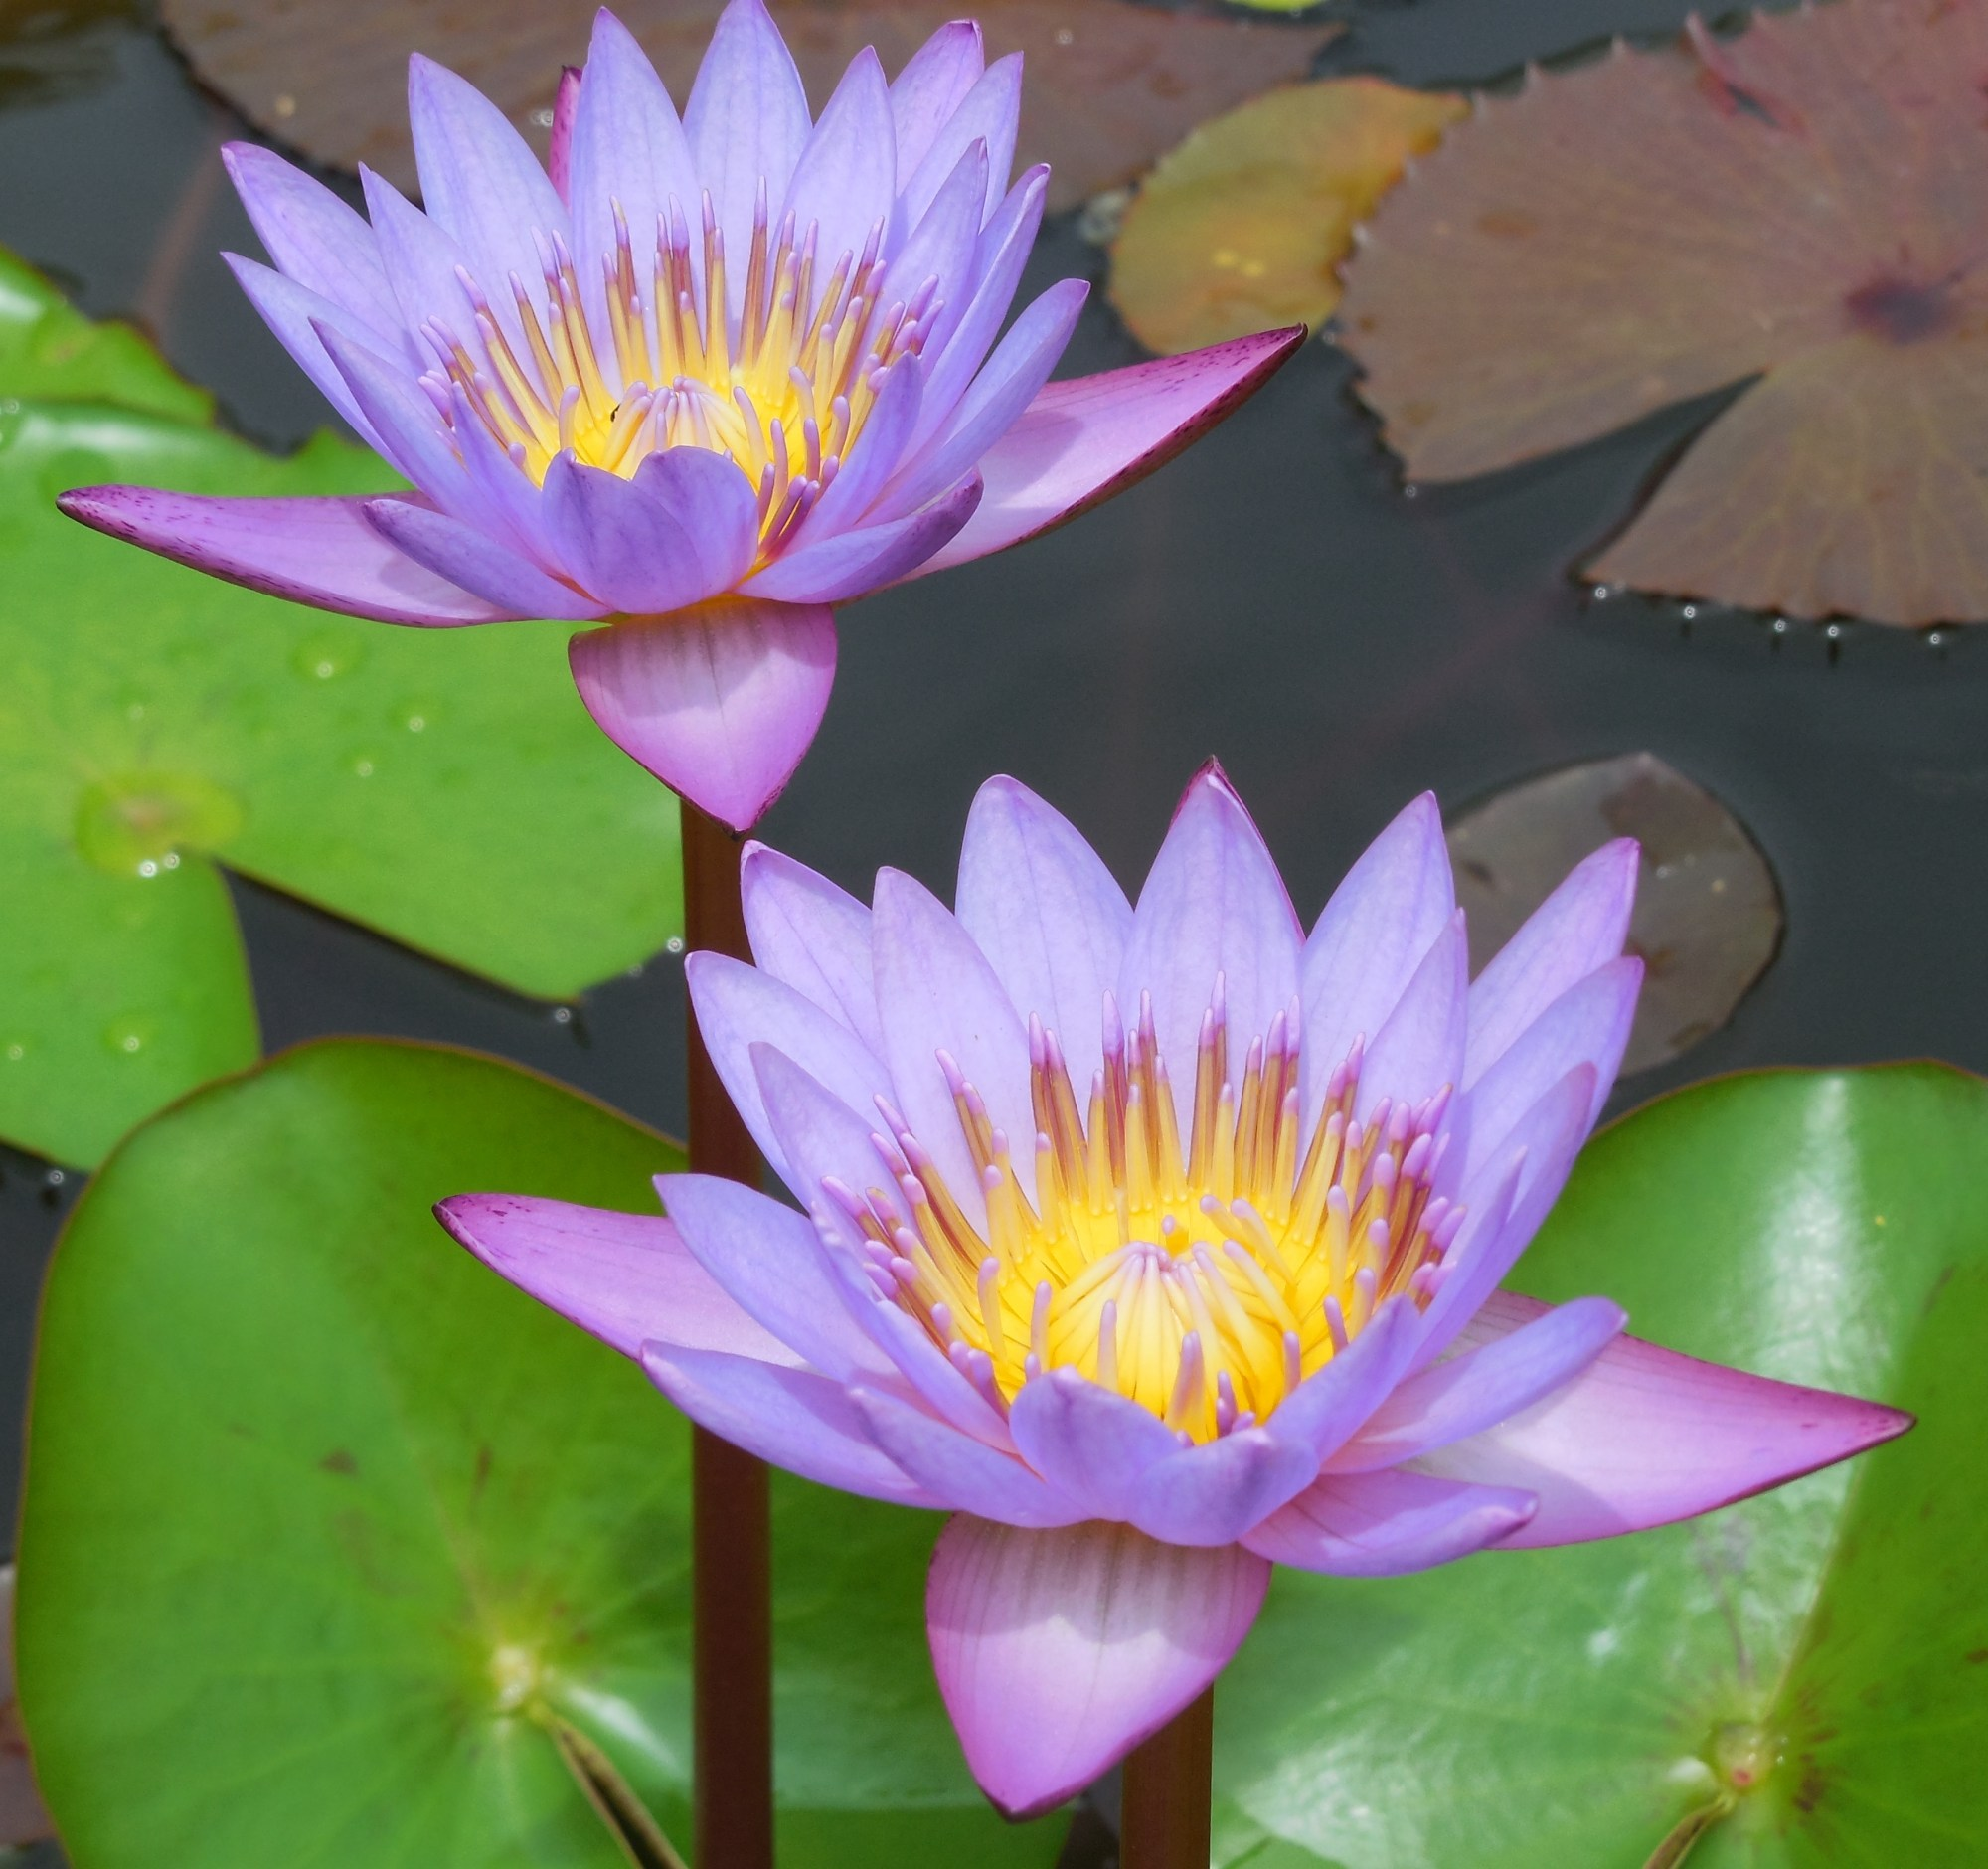 hight resolution of file water lily in thiruvananthapuram jpg